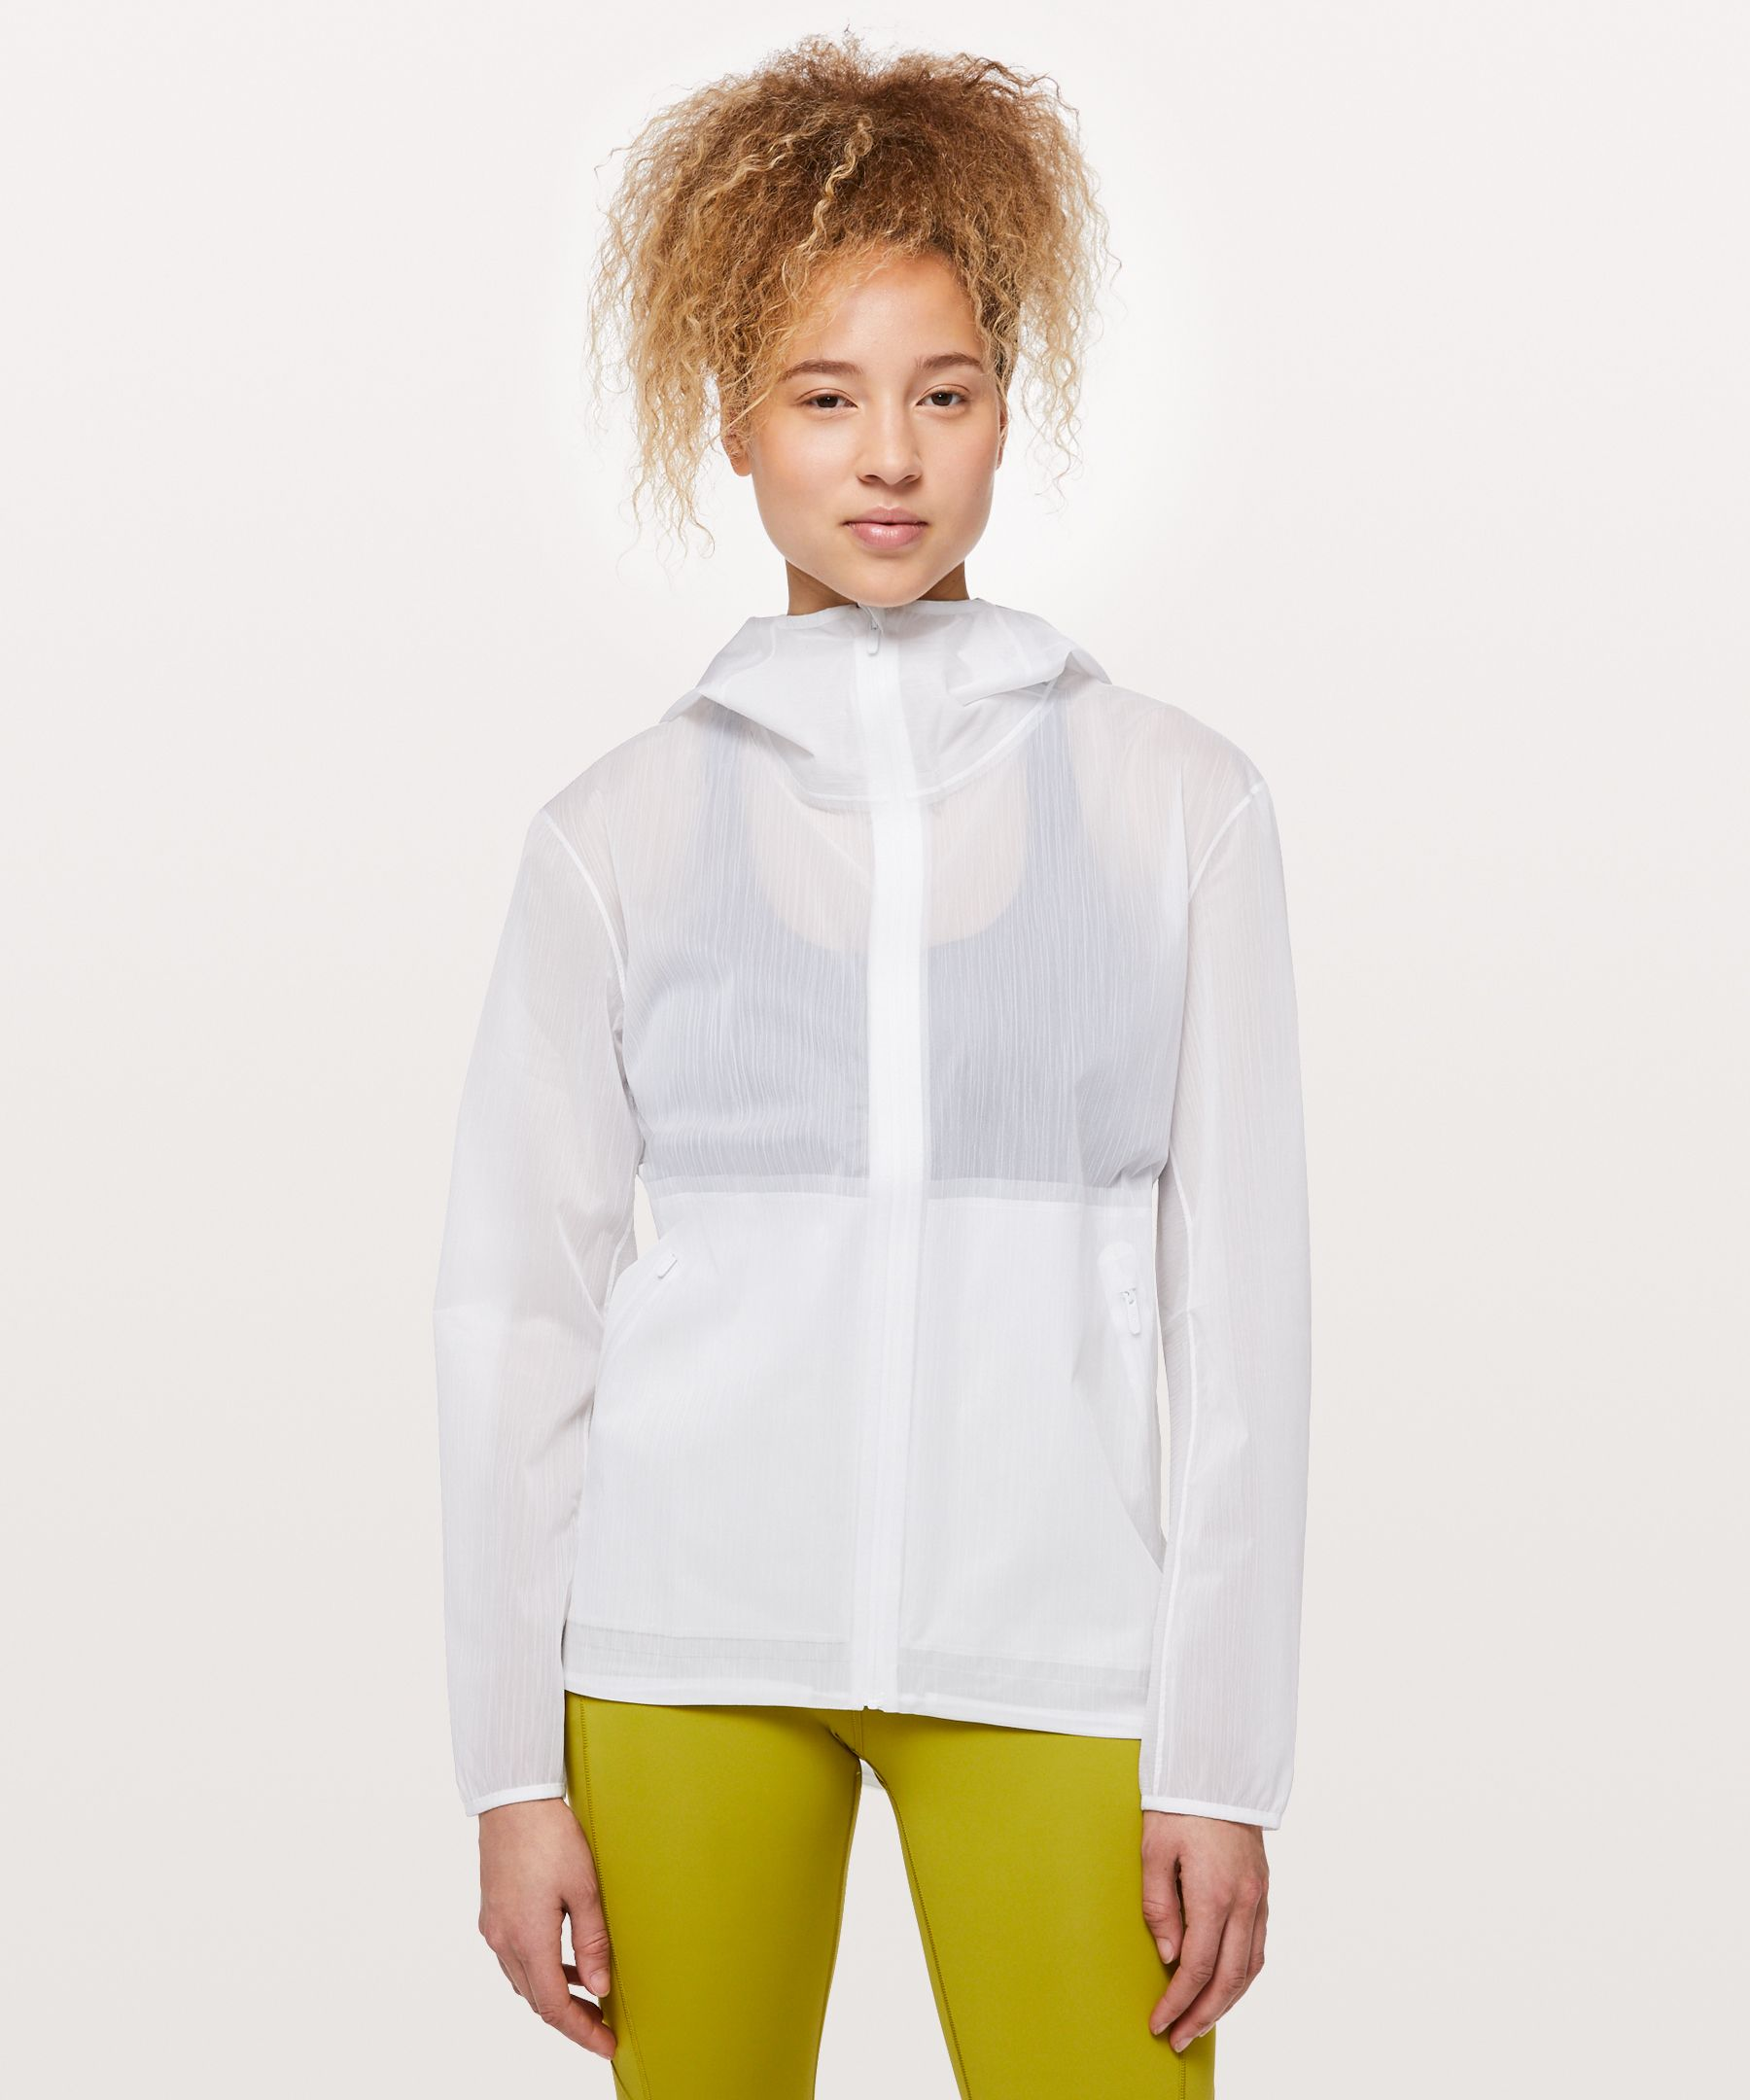 Embrace unpredictable weather  in this lightweight jacket.  Translucent and textured, this  material looks like chiffon  and performs like a technical  fabric, so you can take on  wind and light rain in style.